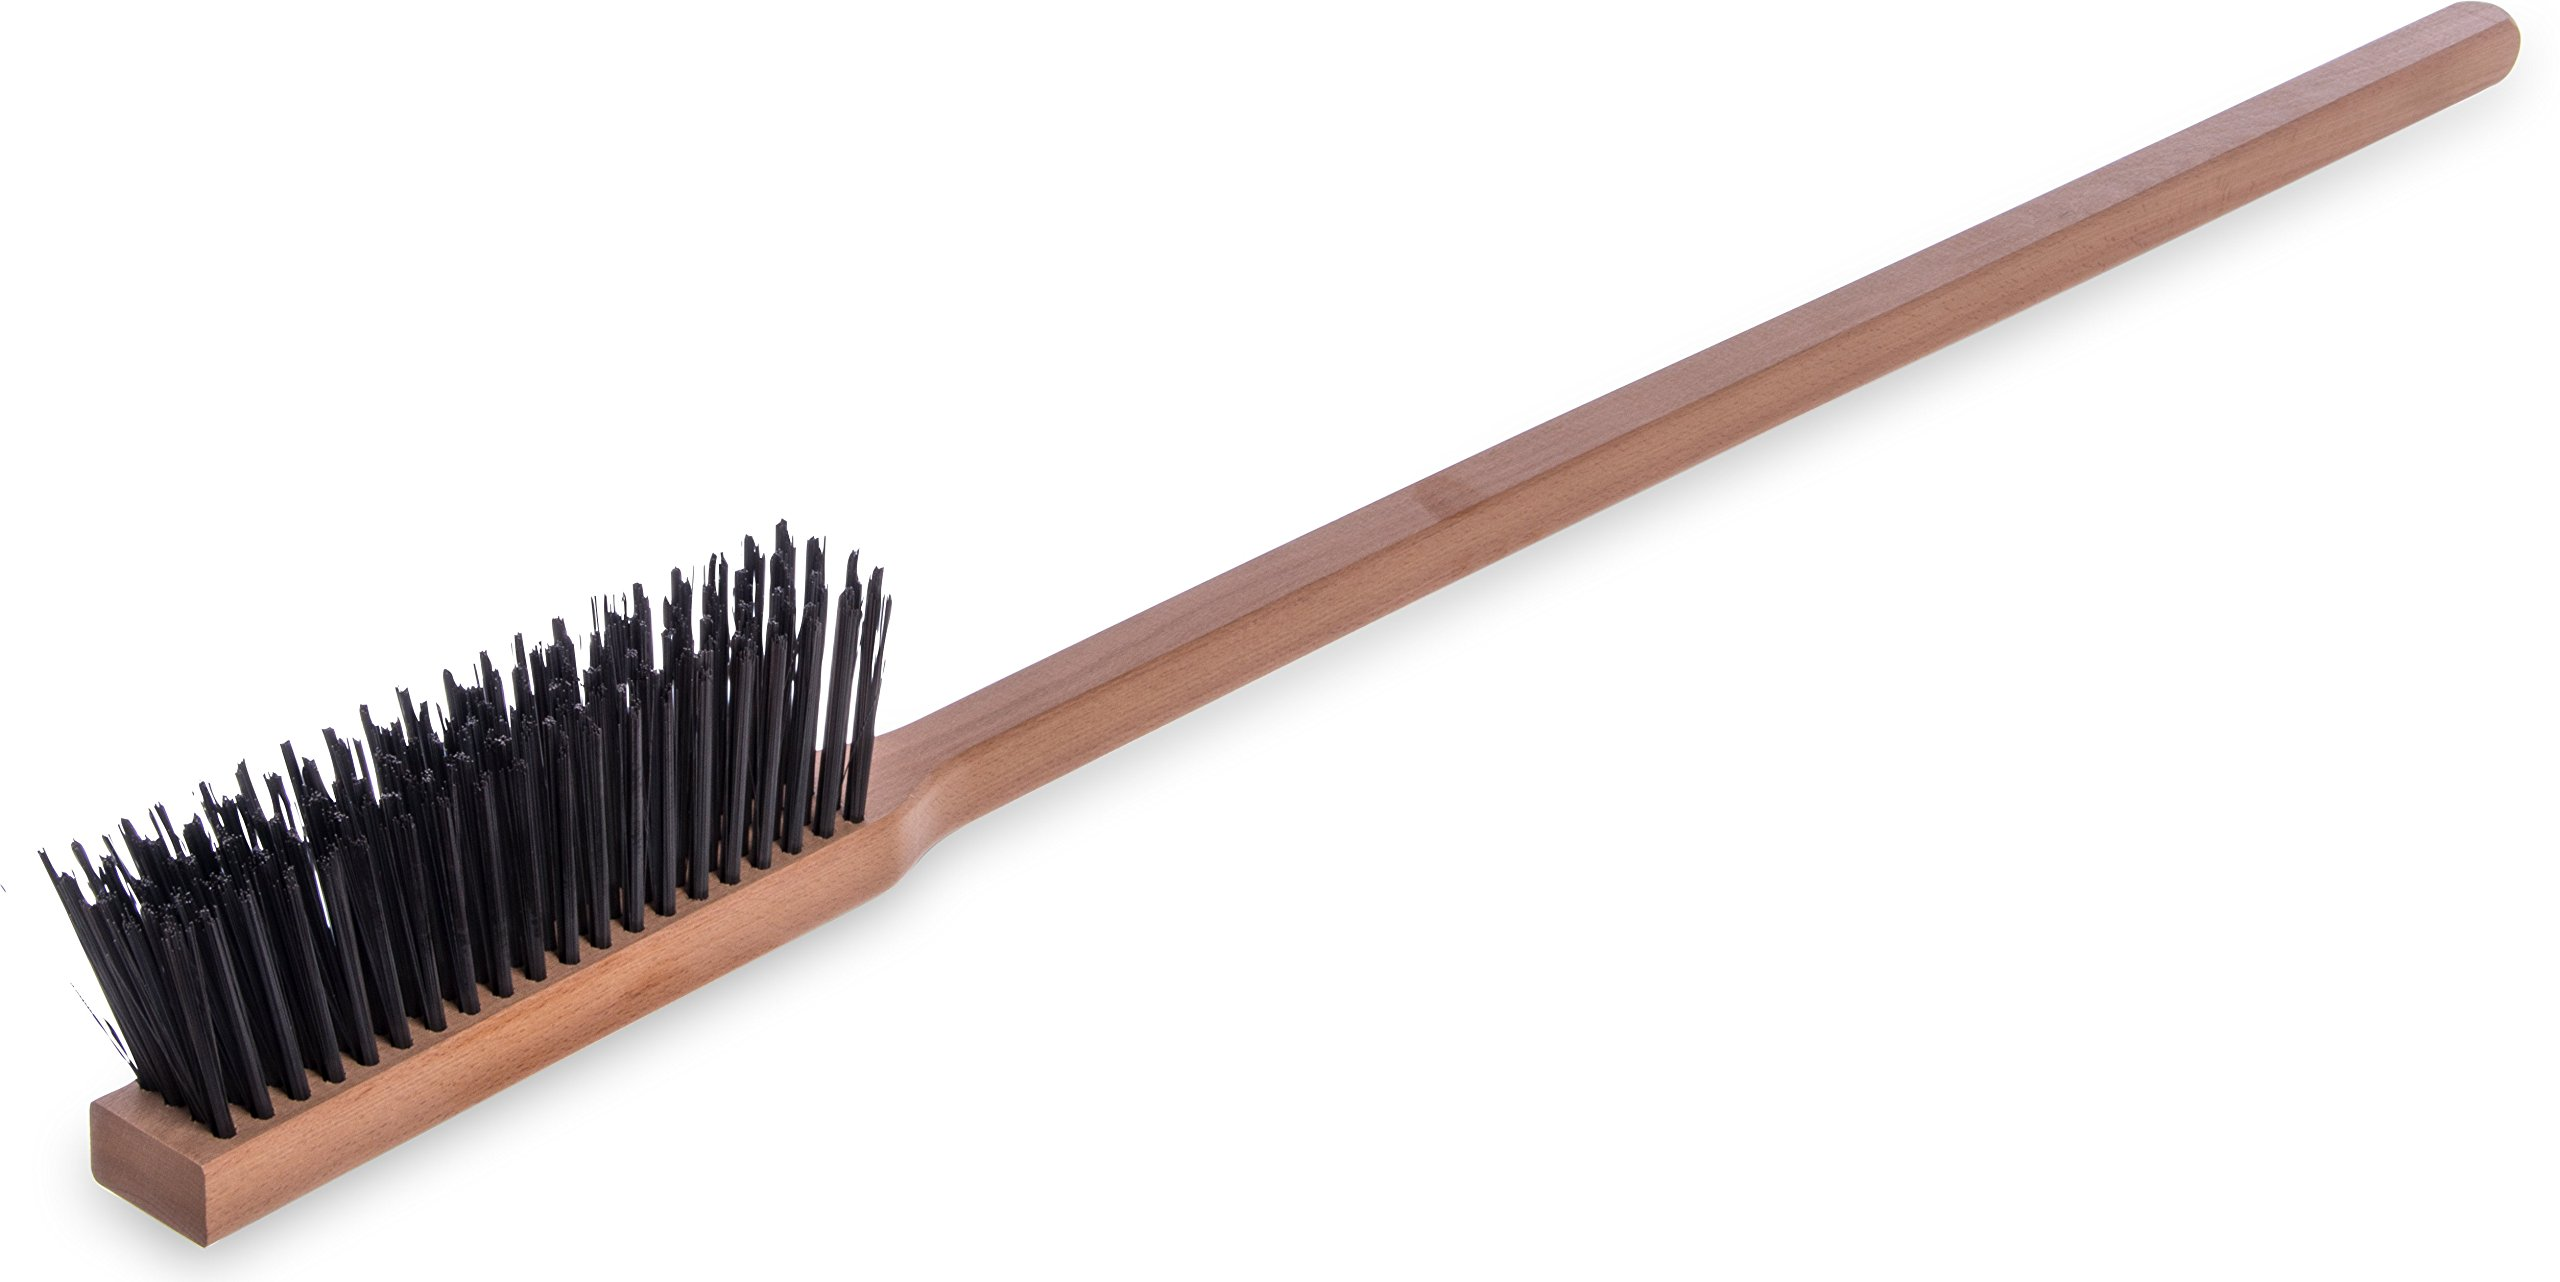 Carlisle 4577200 Carbon Steel Bristle Pizza/BBQ Oven Brush, 39'' Overall Length